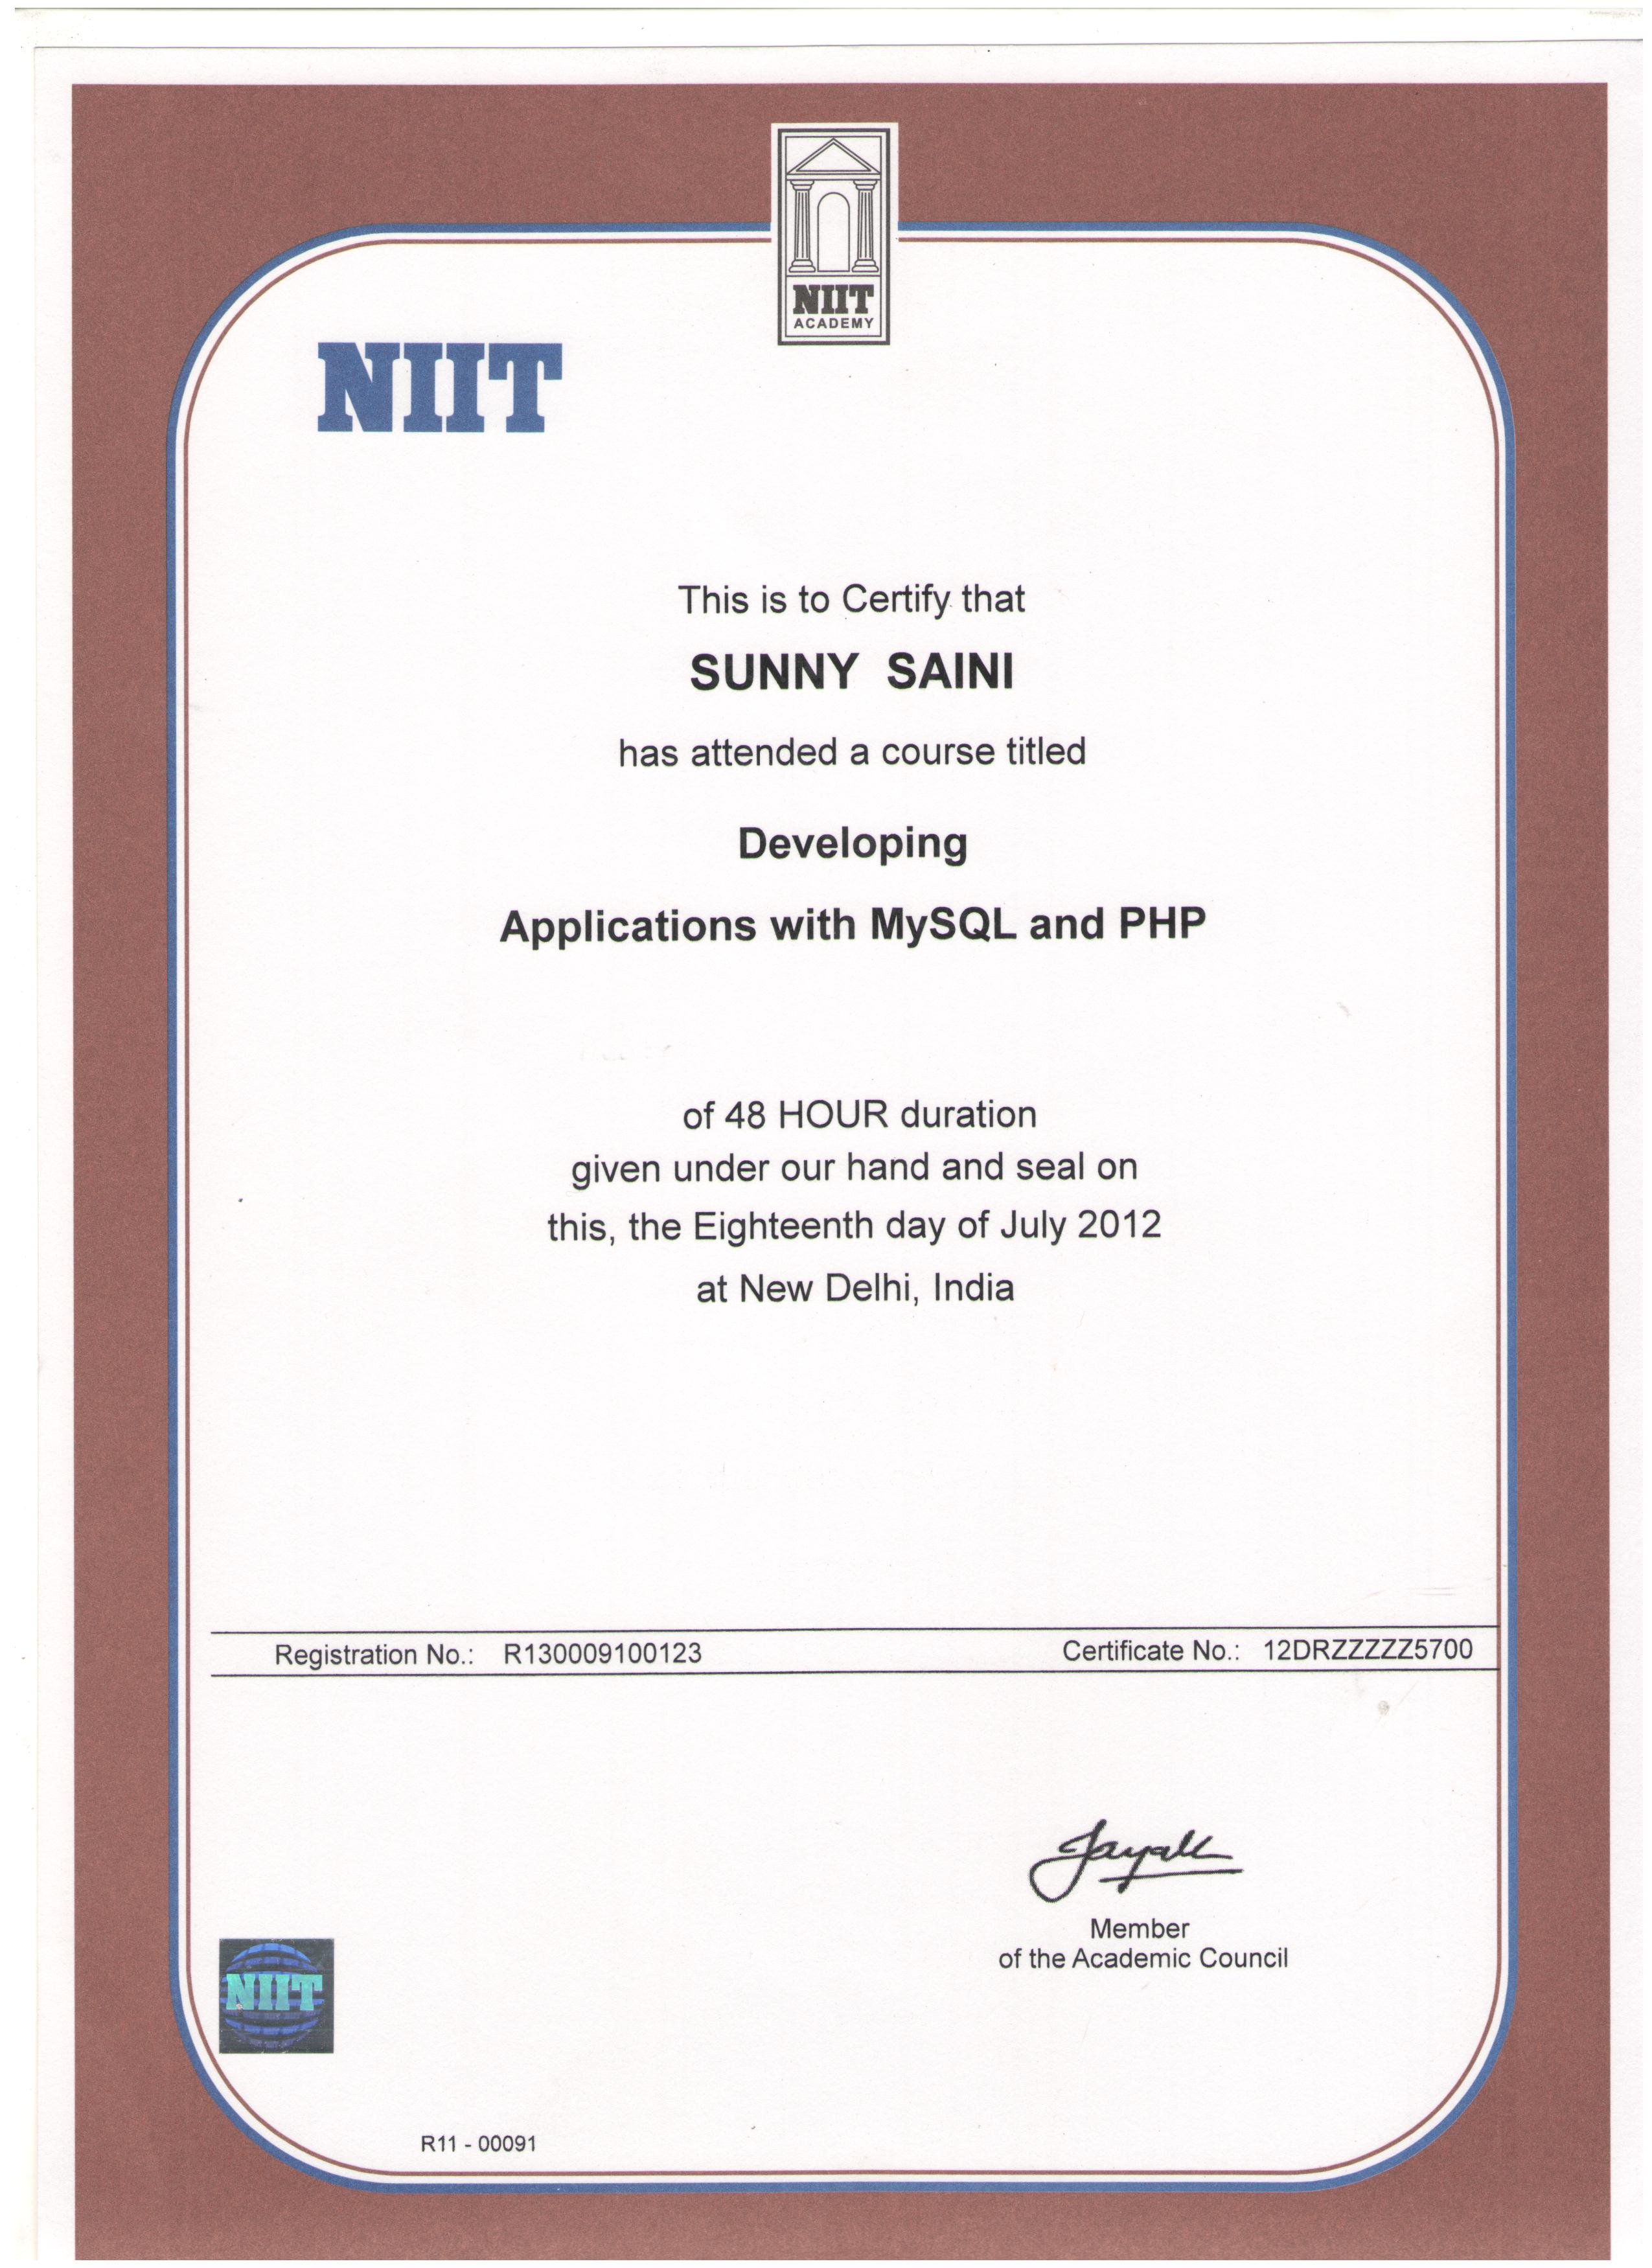 MySQL and PHP Certificate by NIIT